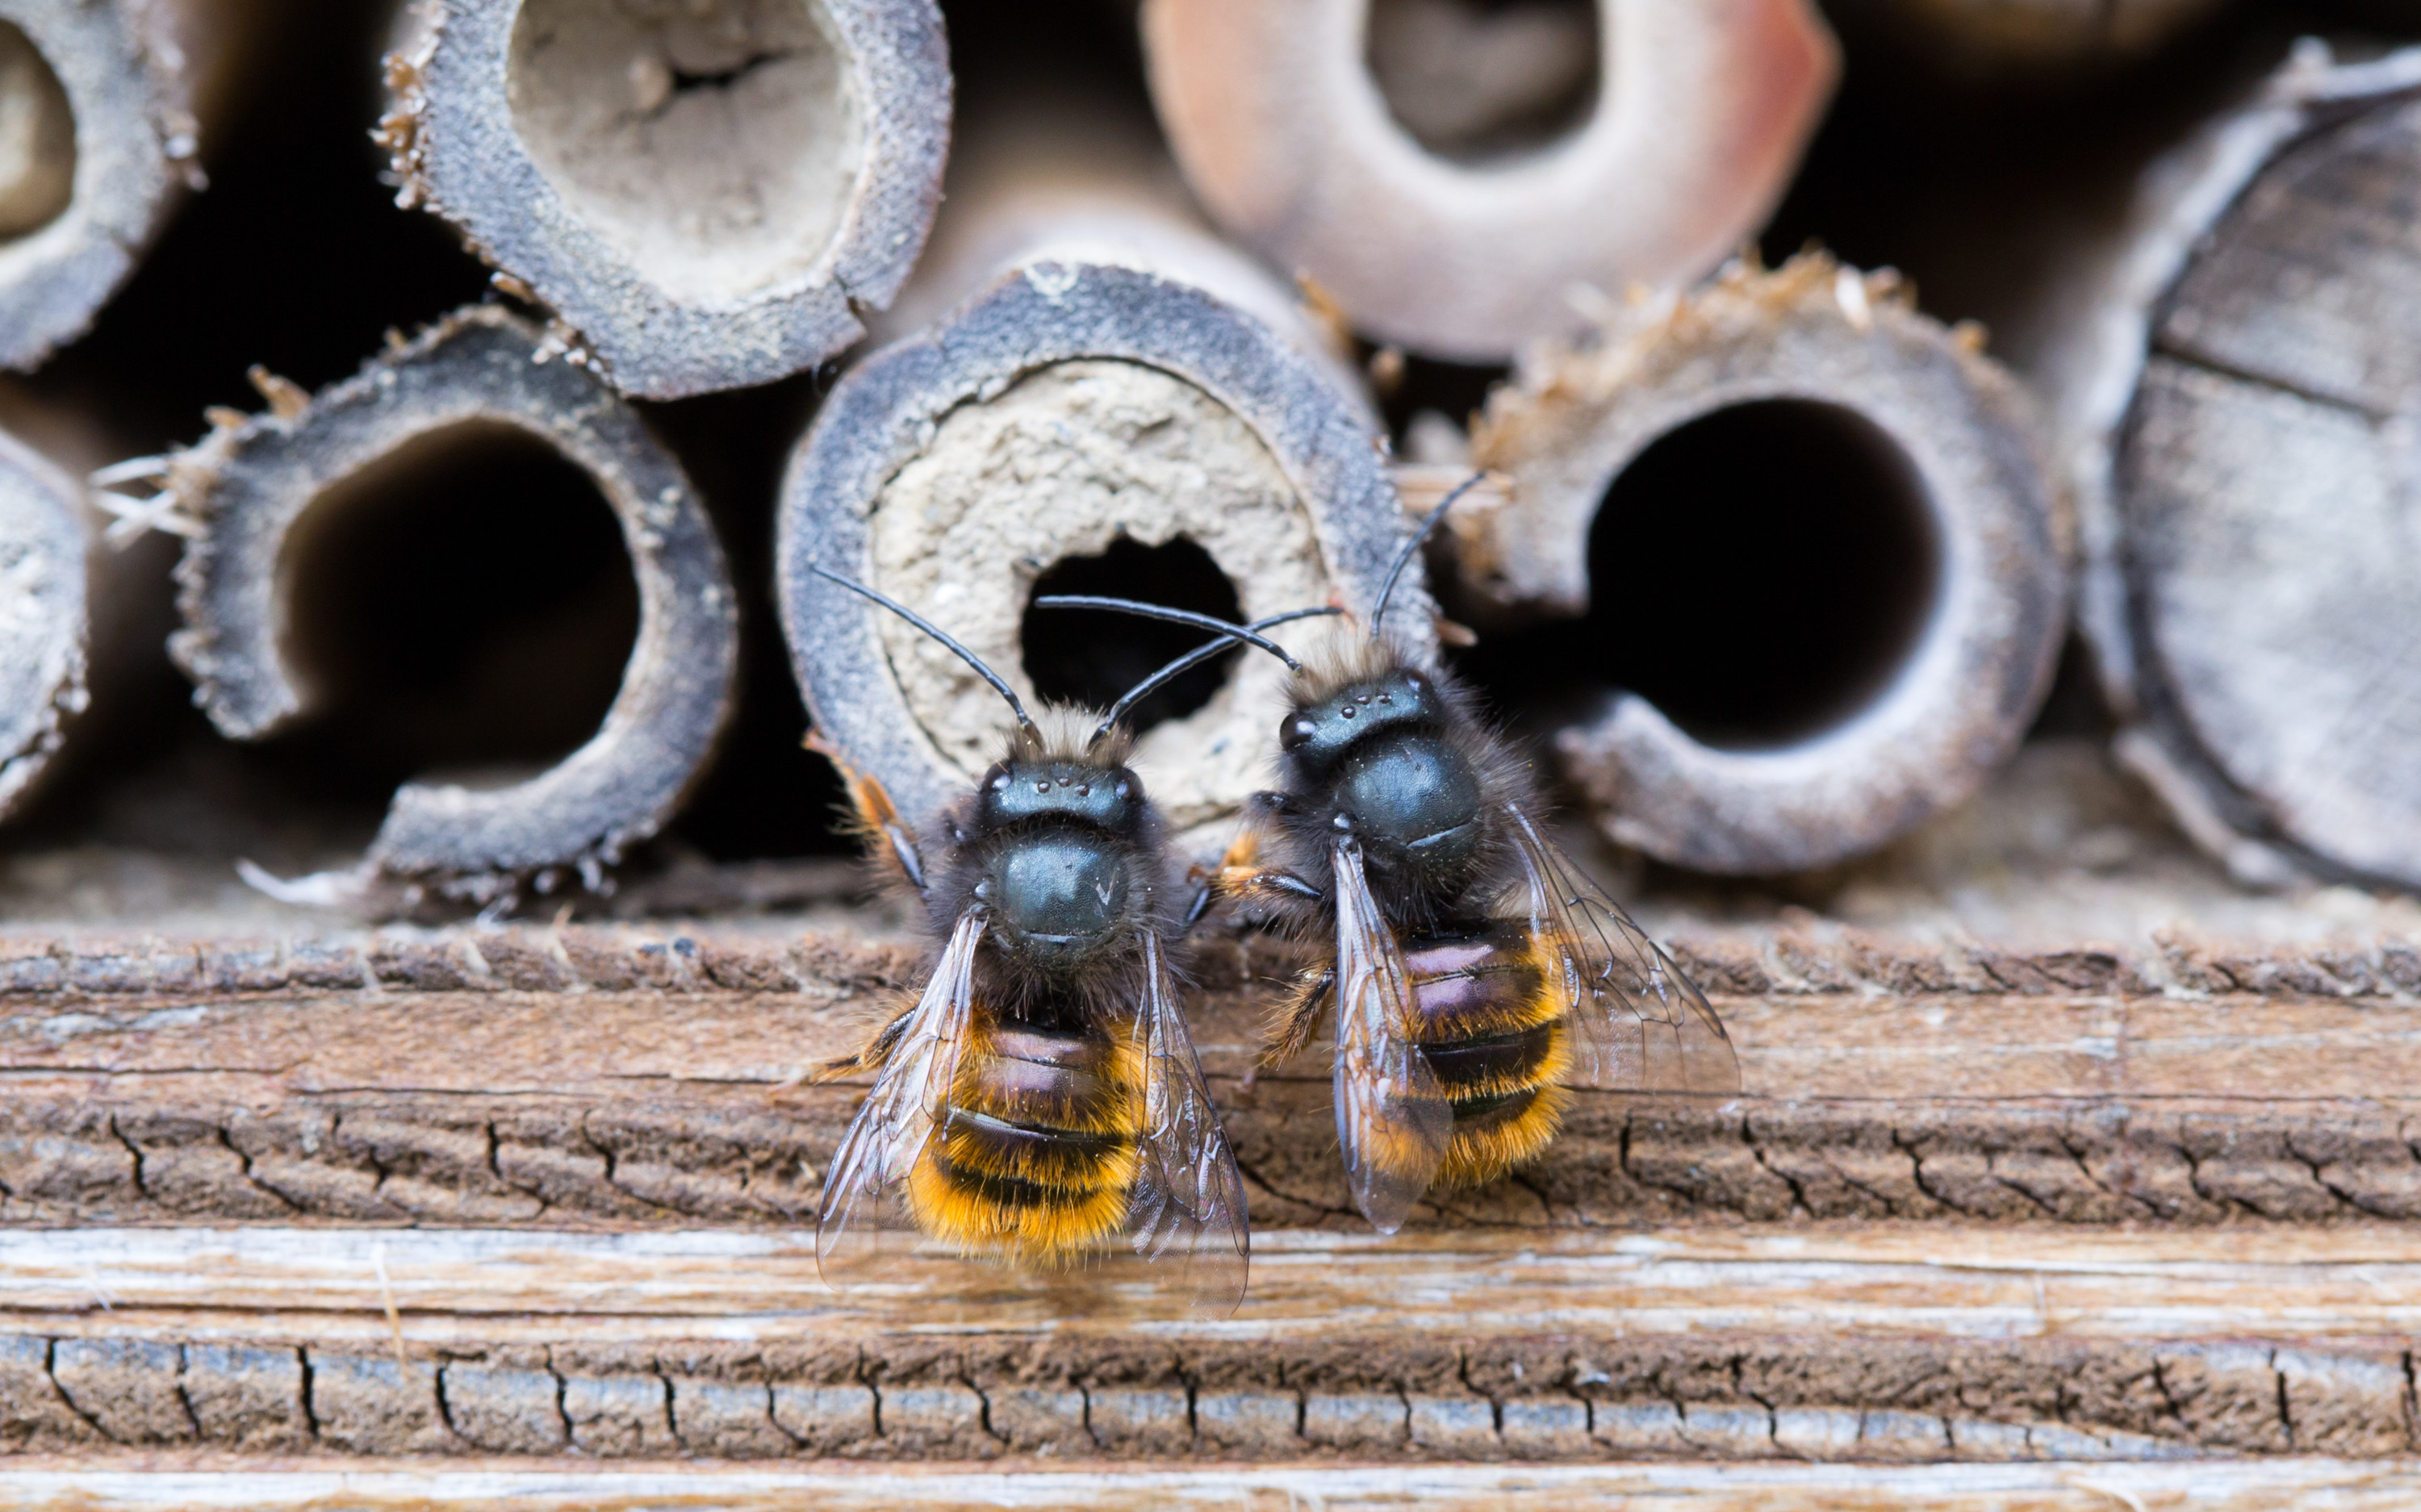 A close up of two honey bees.